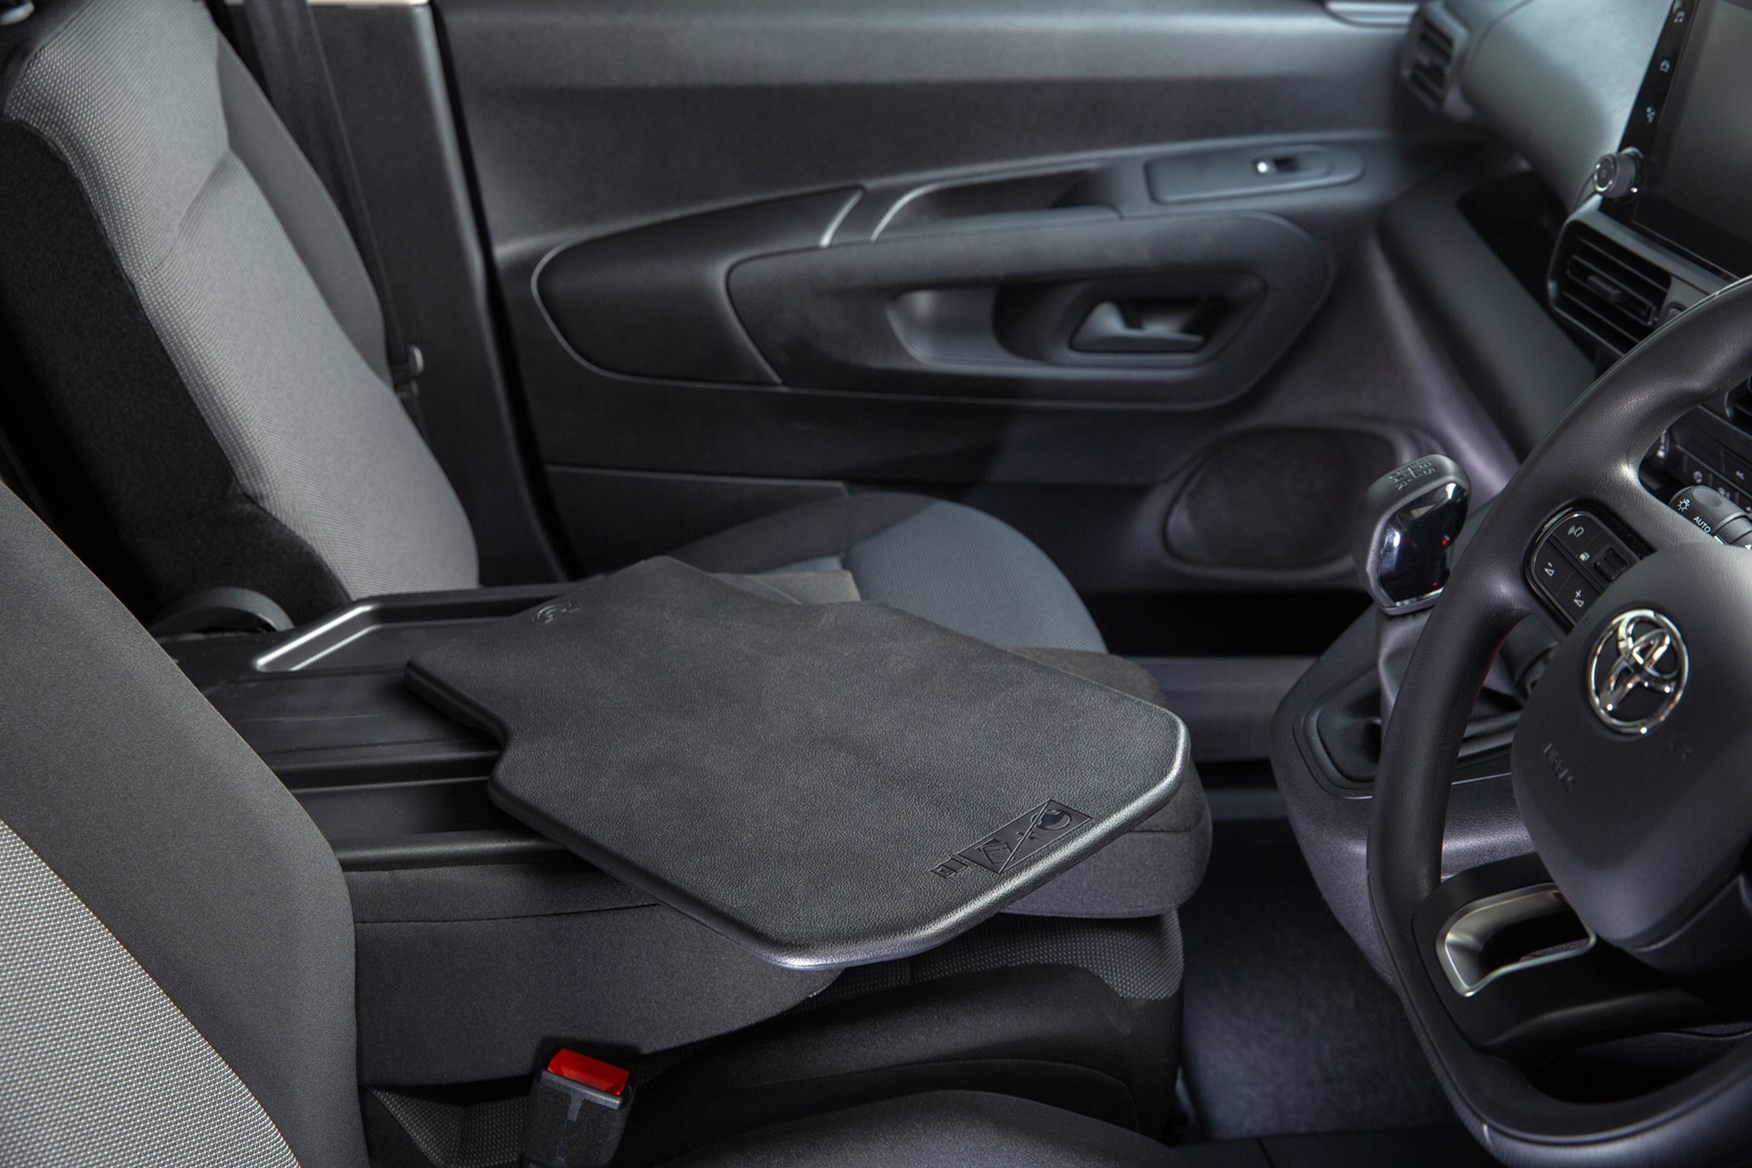 2020 Toyota Proace City review - cab interior, mobile office